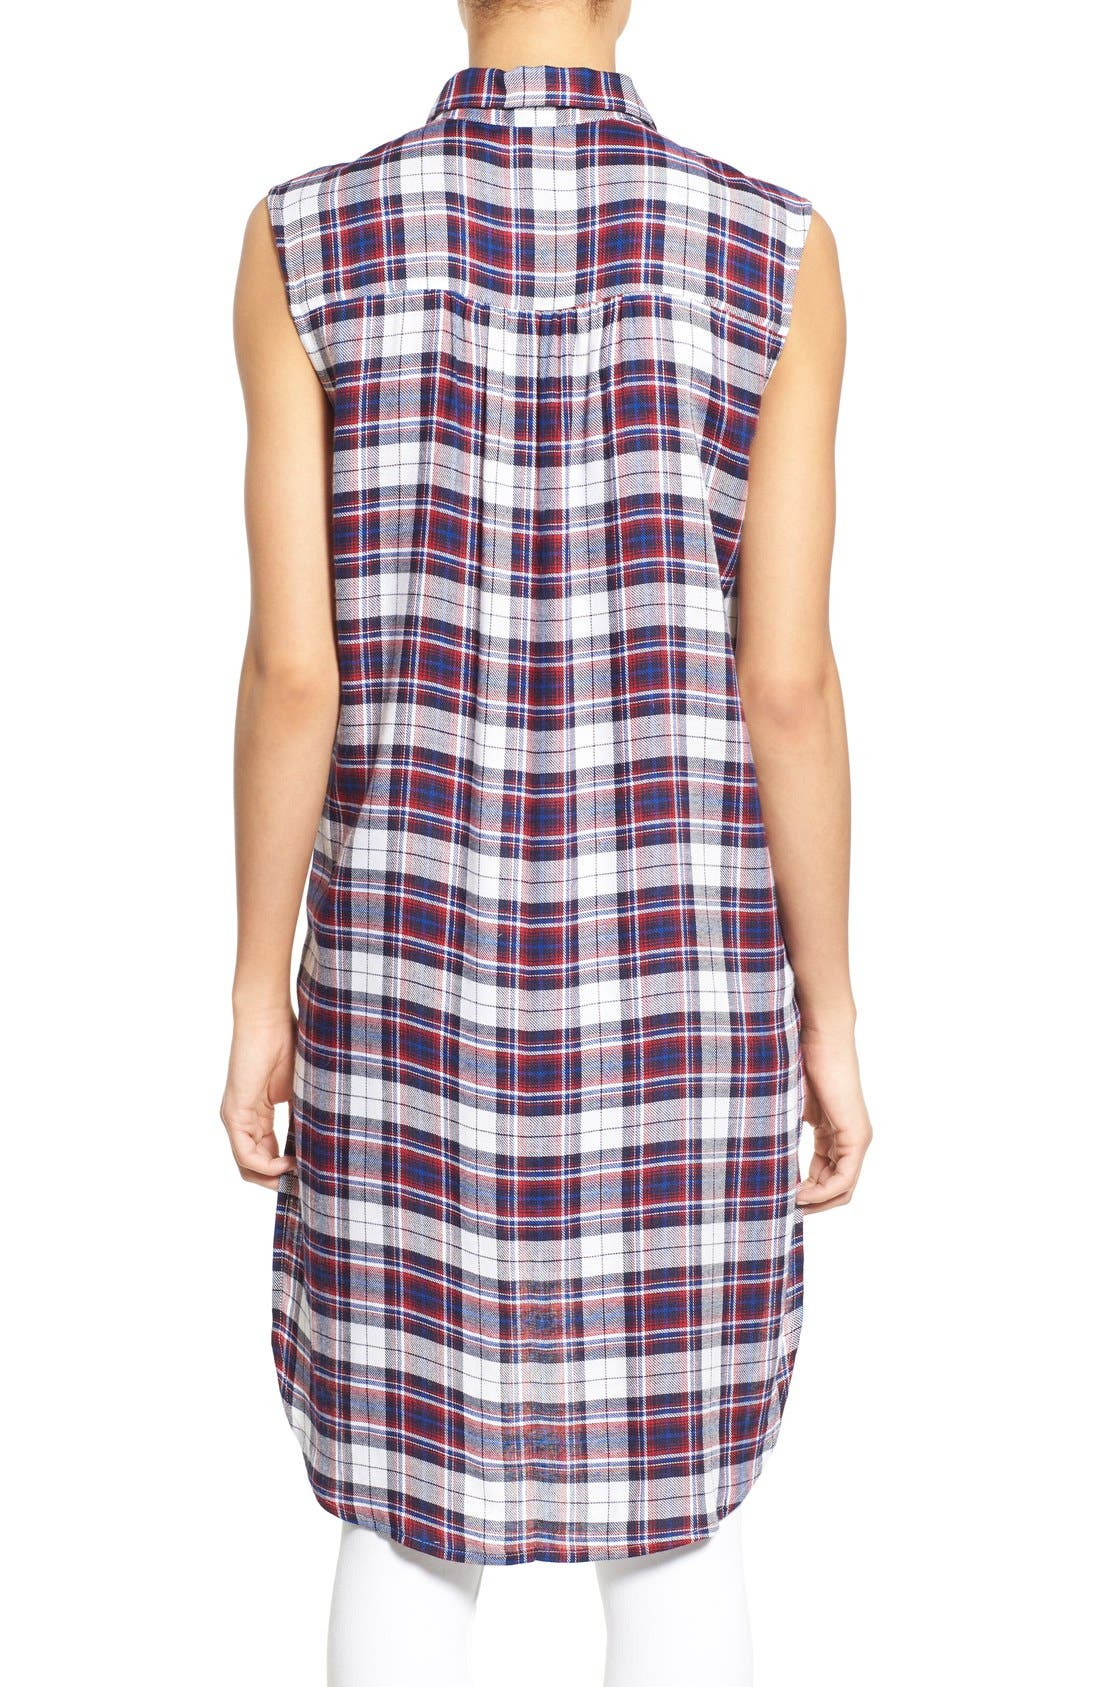 Alternate Image 2  - Bobeau Plaid Two Pocket Sleeveless Tunic Shirt